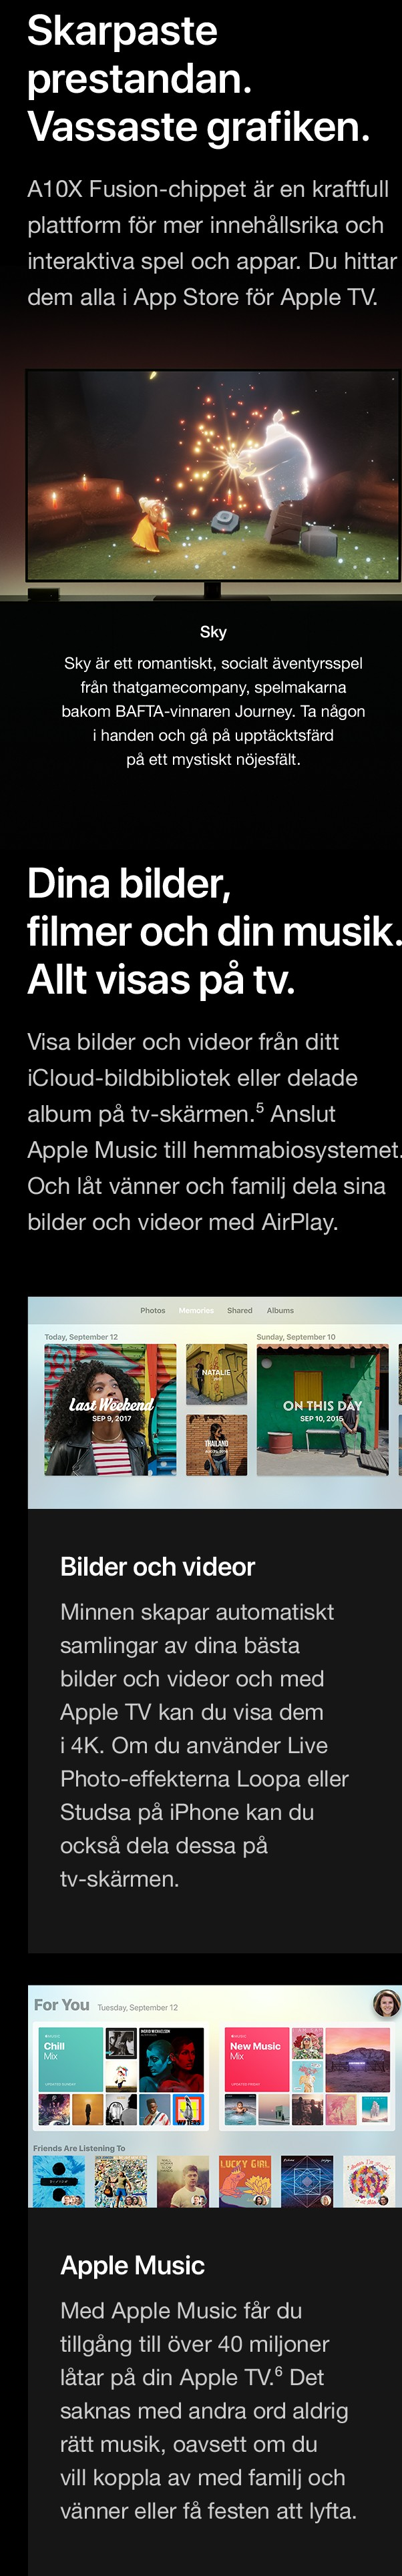 Köp Apple 4K TV nu